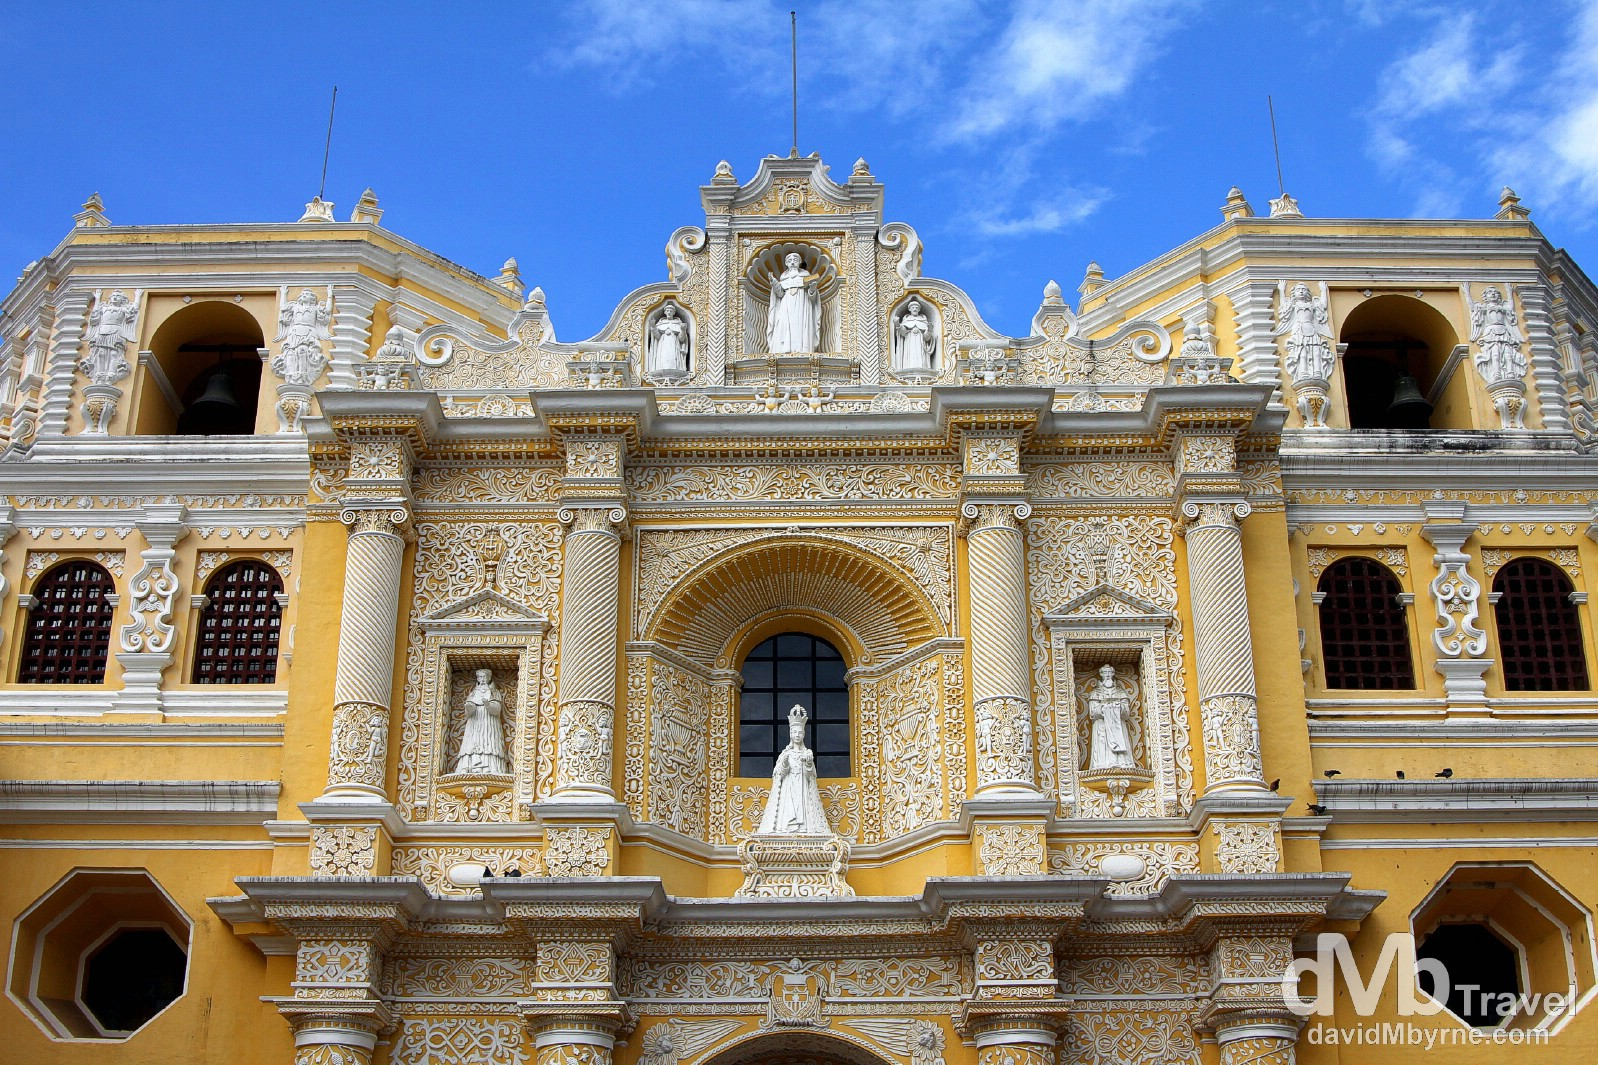 The façade of the Iglesia y Convento de Nuestra Senora de la Merced, Antigua, Guatemala. May 25th 2013.